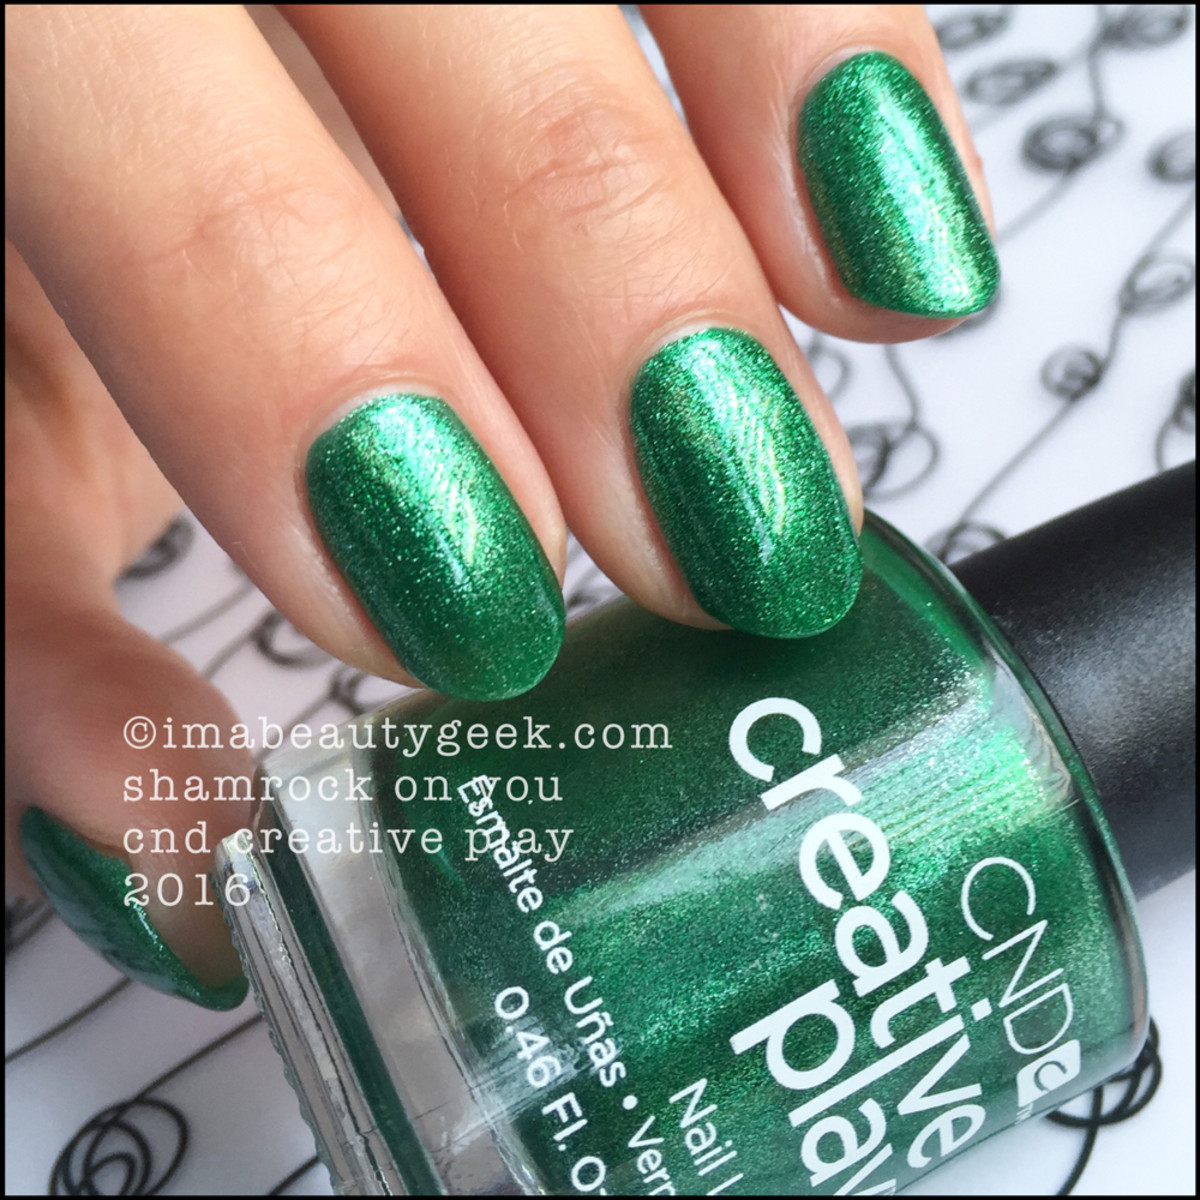 CND Creative Play Shamrock on You_CND Creative Play Nail Polish Swatches 2016